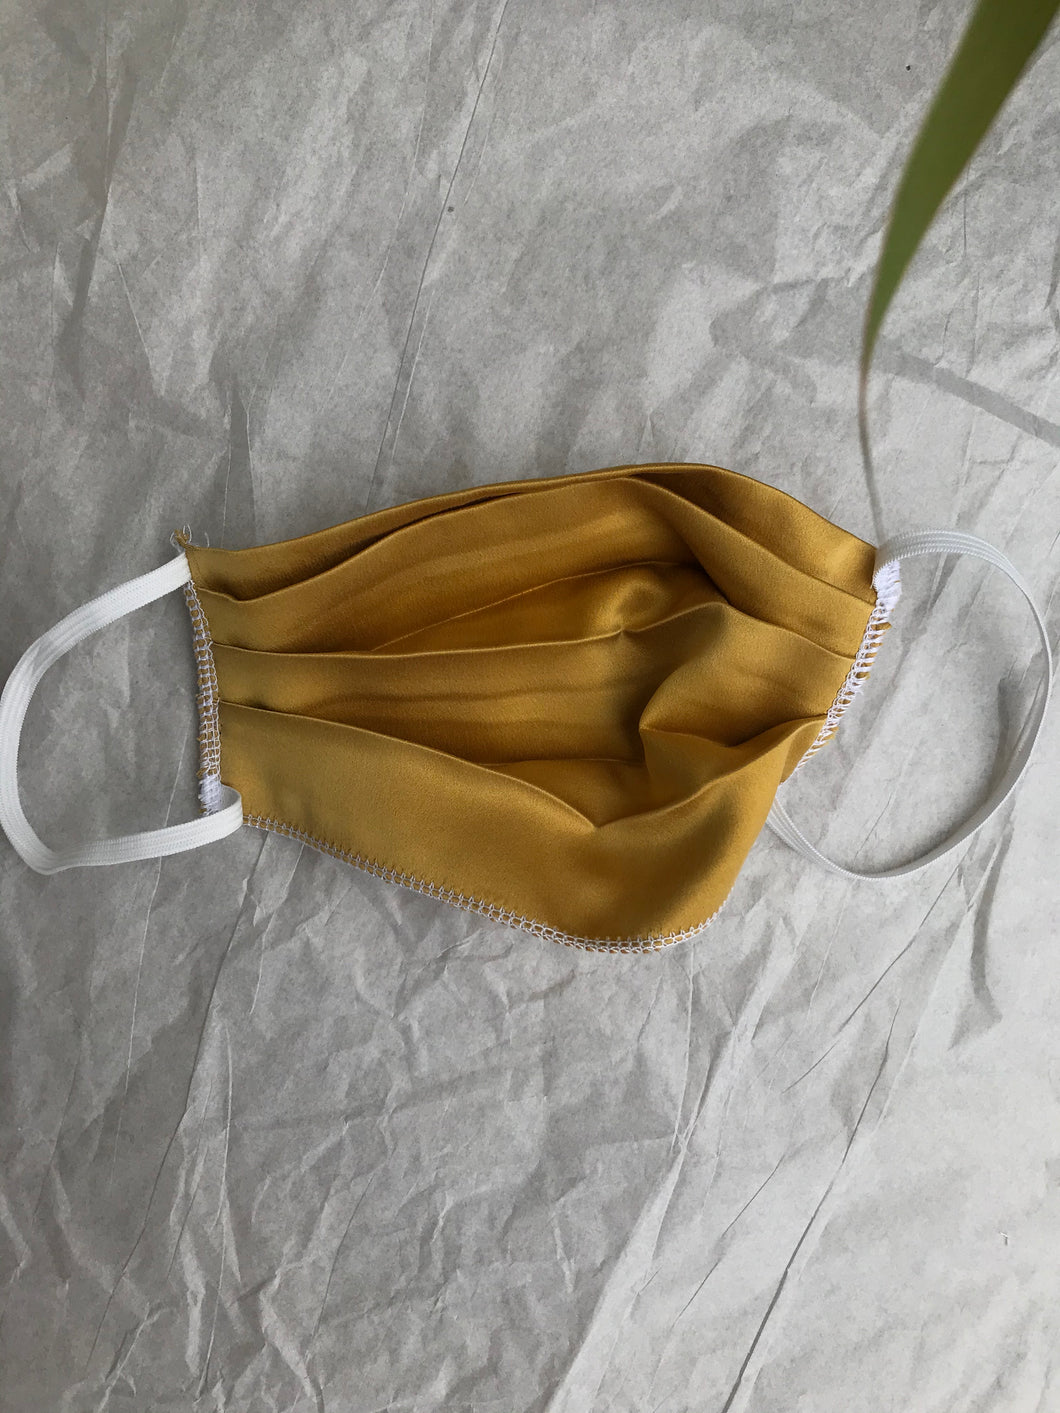 silk mask in oro